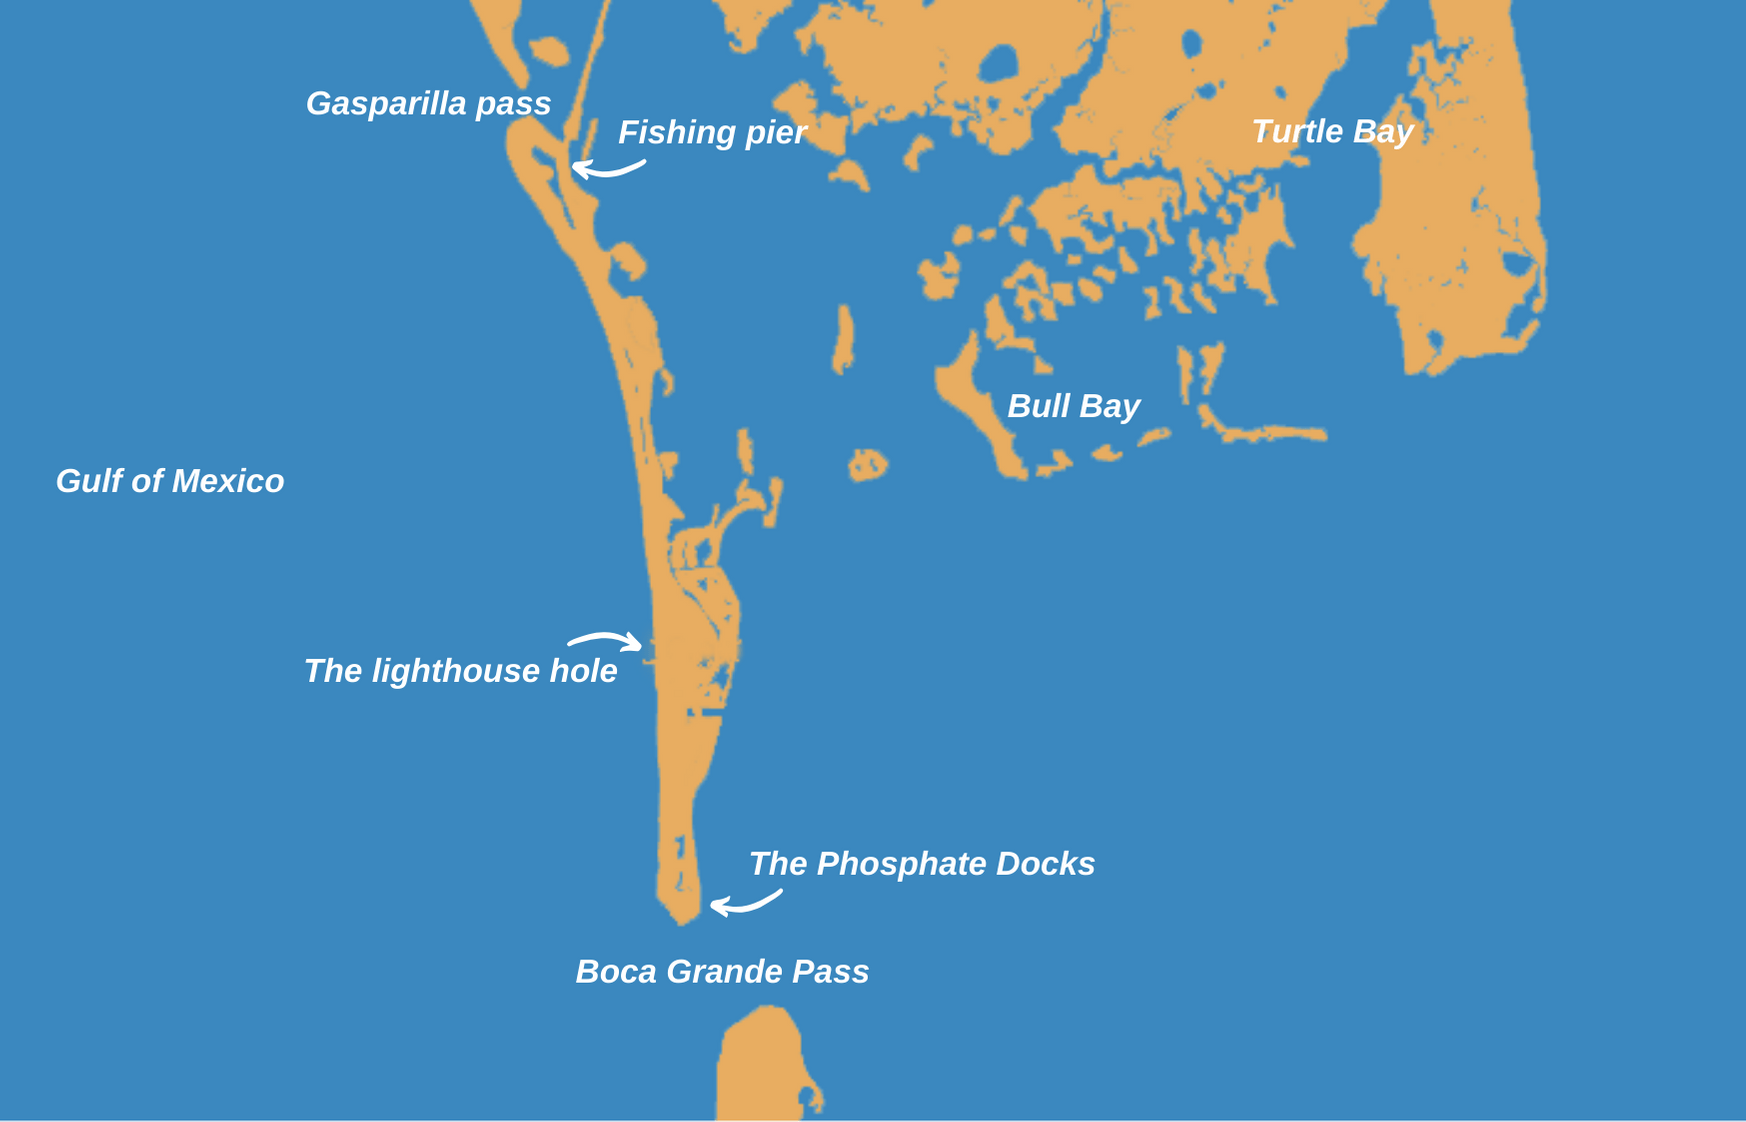 An infographic showing a map of top places to fish in Boca Grande, Florida – Gasparilla Pass, Fishing Pier, Turtle Bay, Bull Bay, The Phosphate Docks, Boca Grande Pass, The Lighthouse Hole, Gulf of Mexico